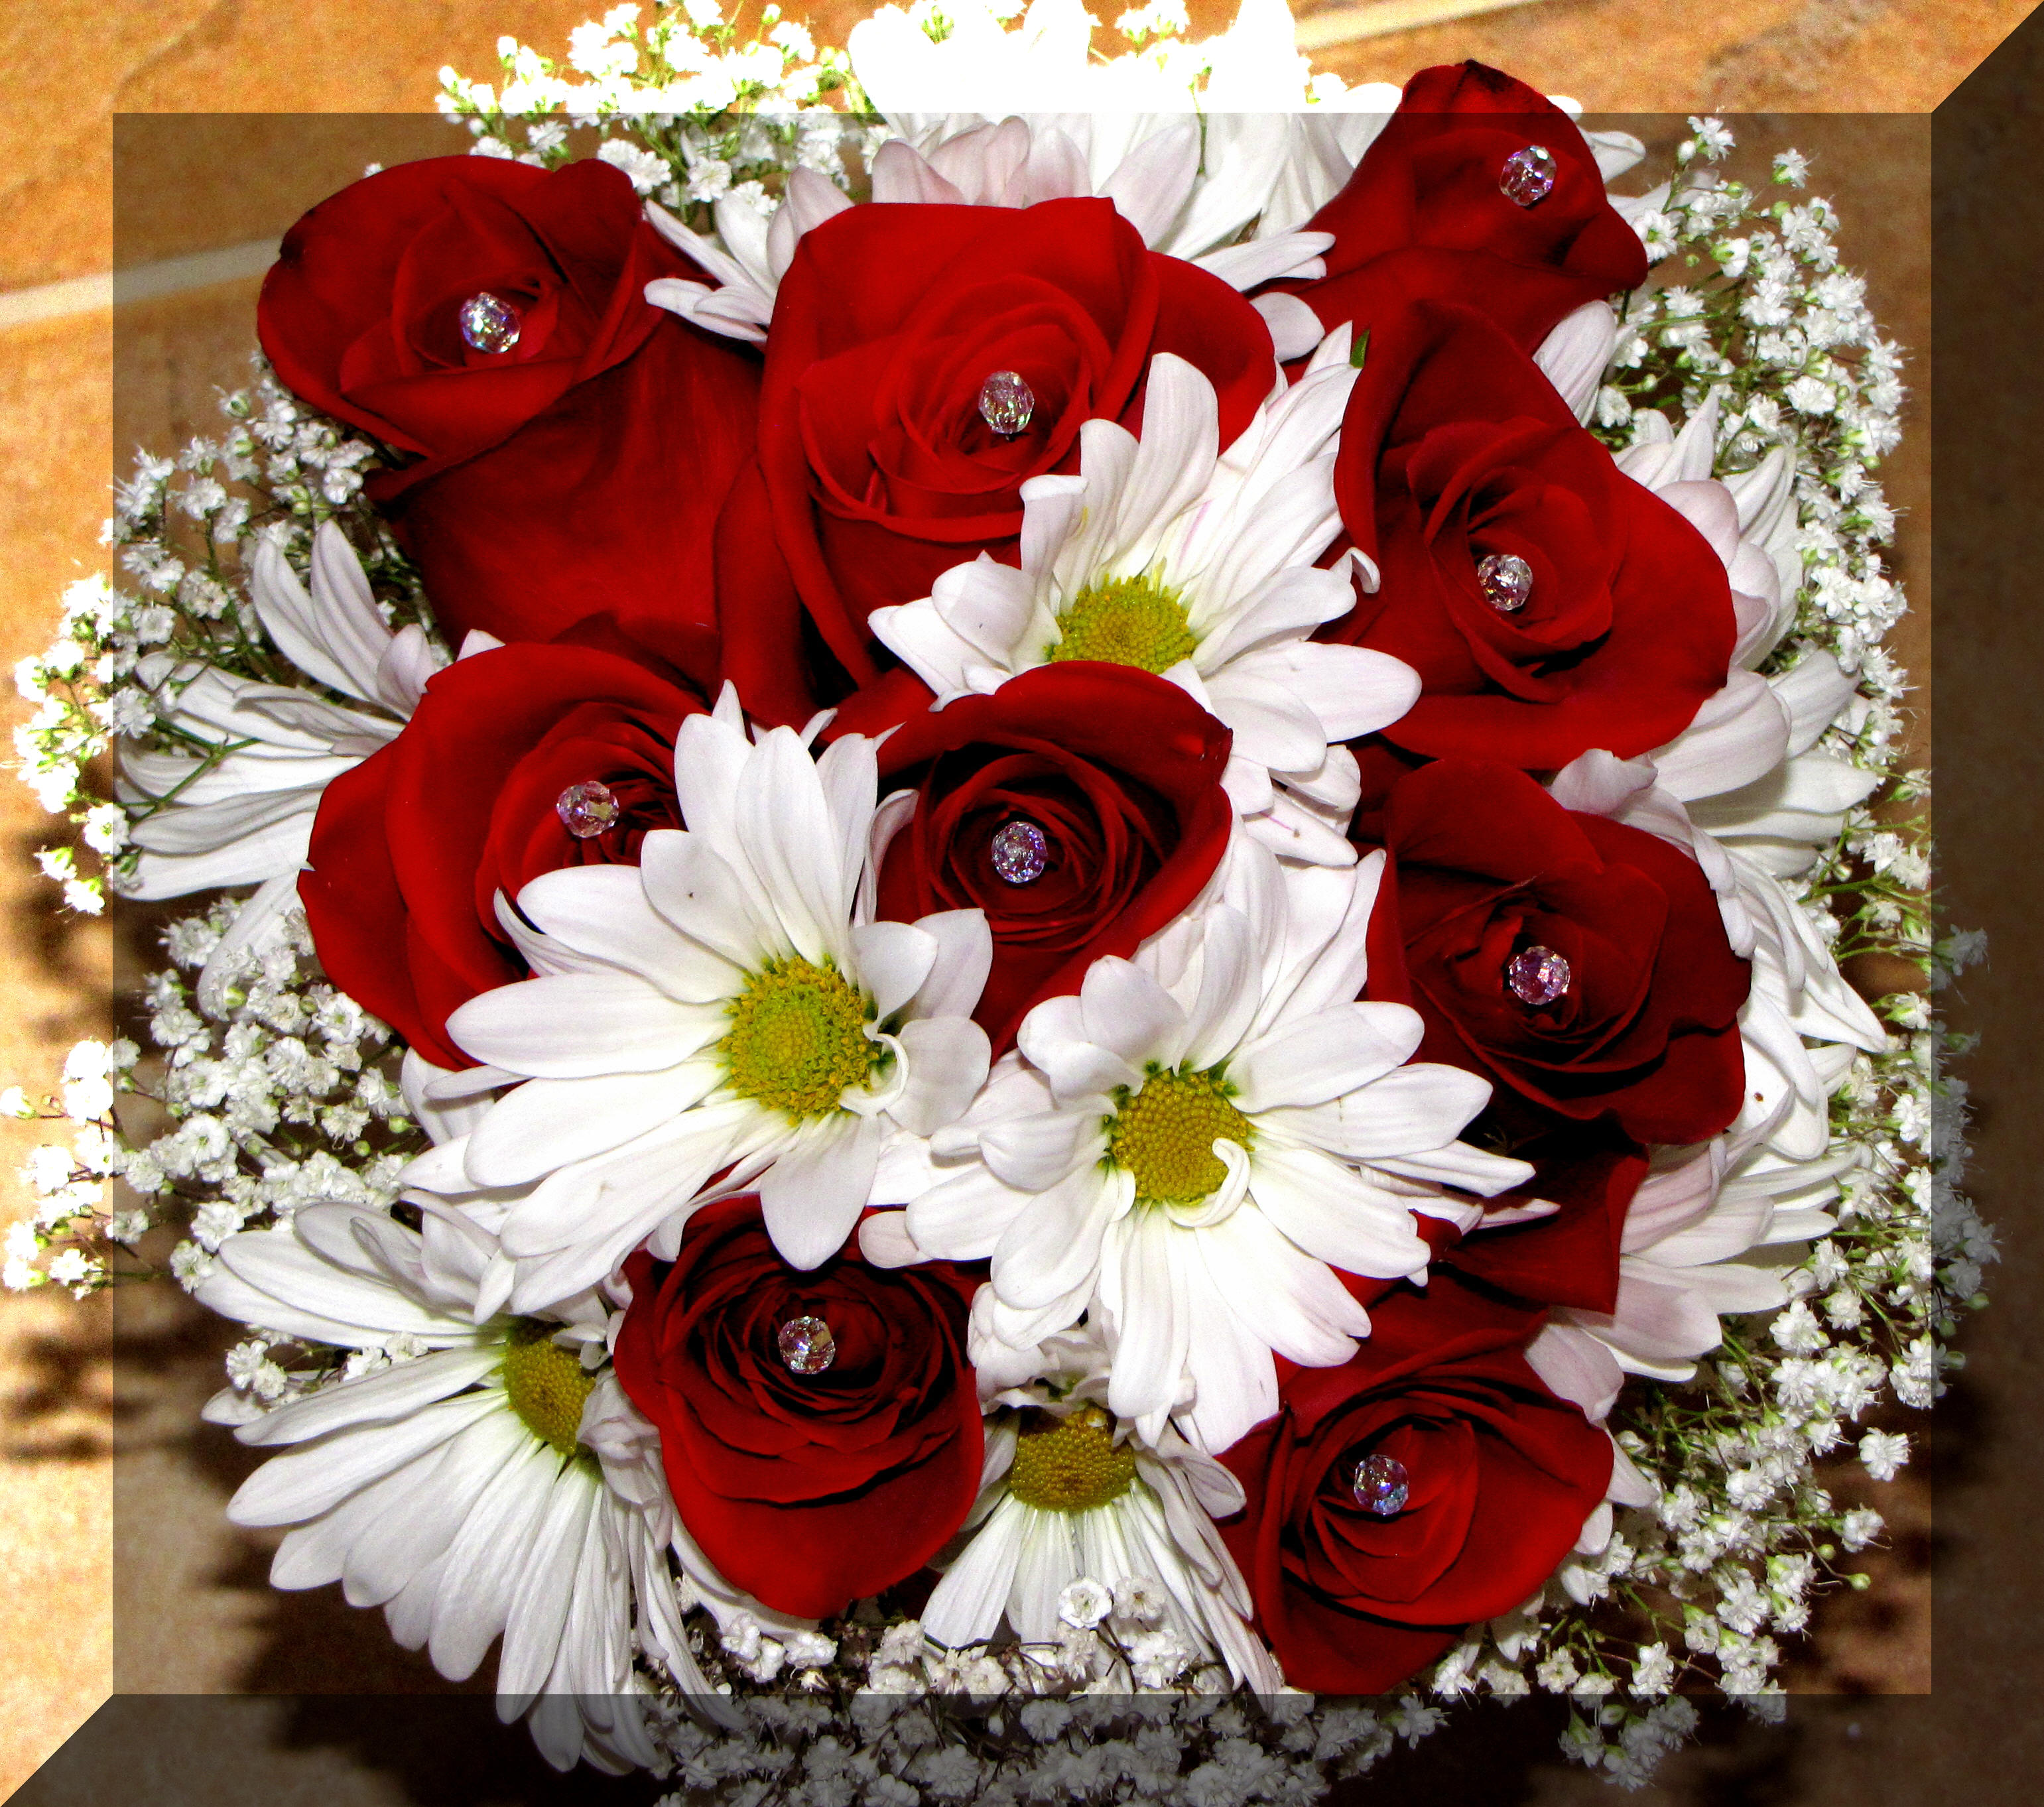 Red rose and daisy wedding bouquets hd image flower and rose bridal bouquets daisies and roses cascading izmirmasajfo